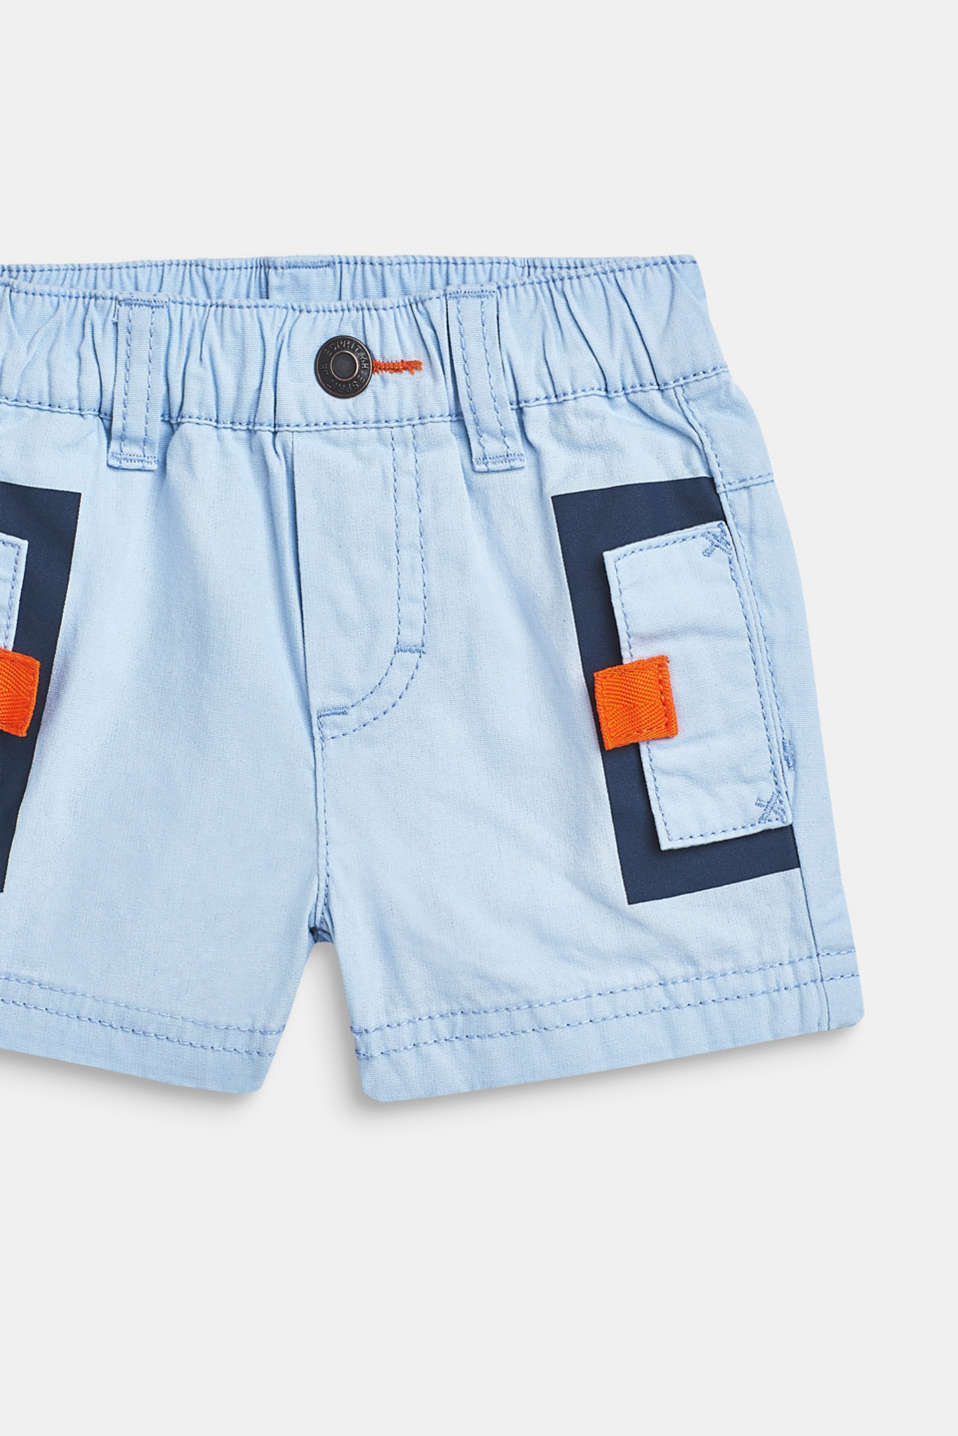 Shorts with an elasticated waistband, 100% cotton, LCSKY BLUE, detail image number 1